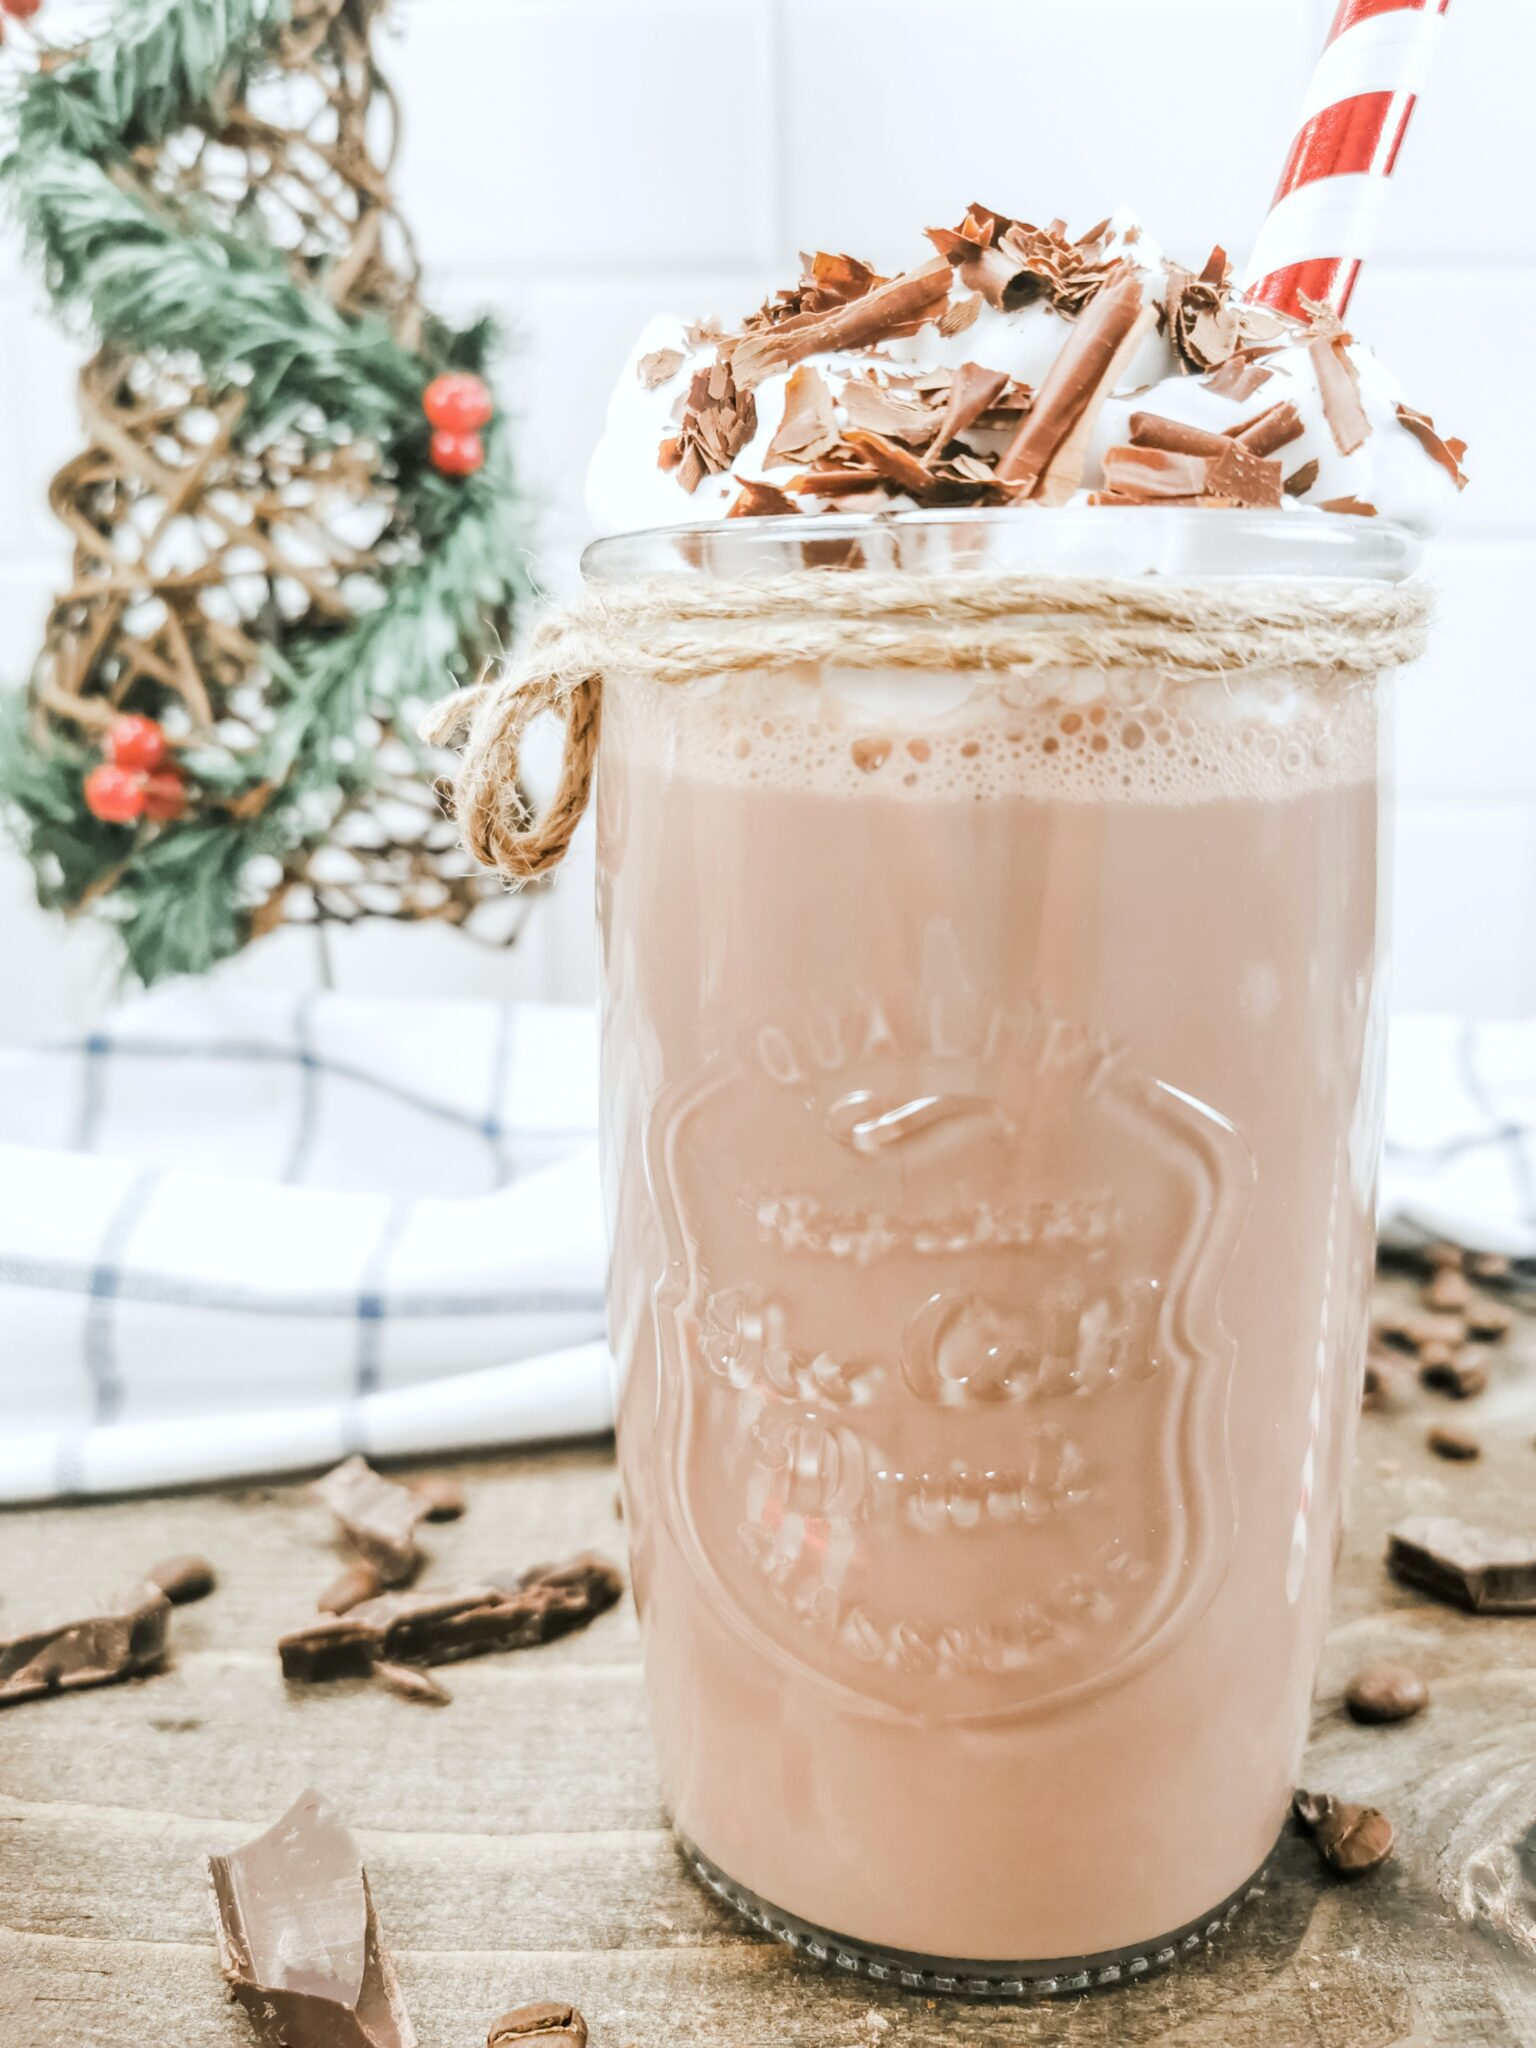 Super close up view of the delicious Hazelnut Protein Iced Mocha.